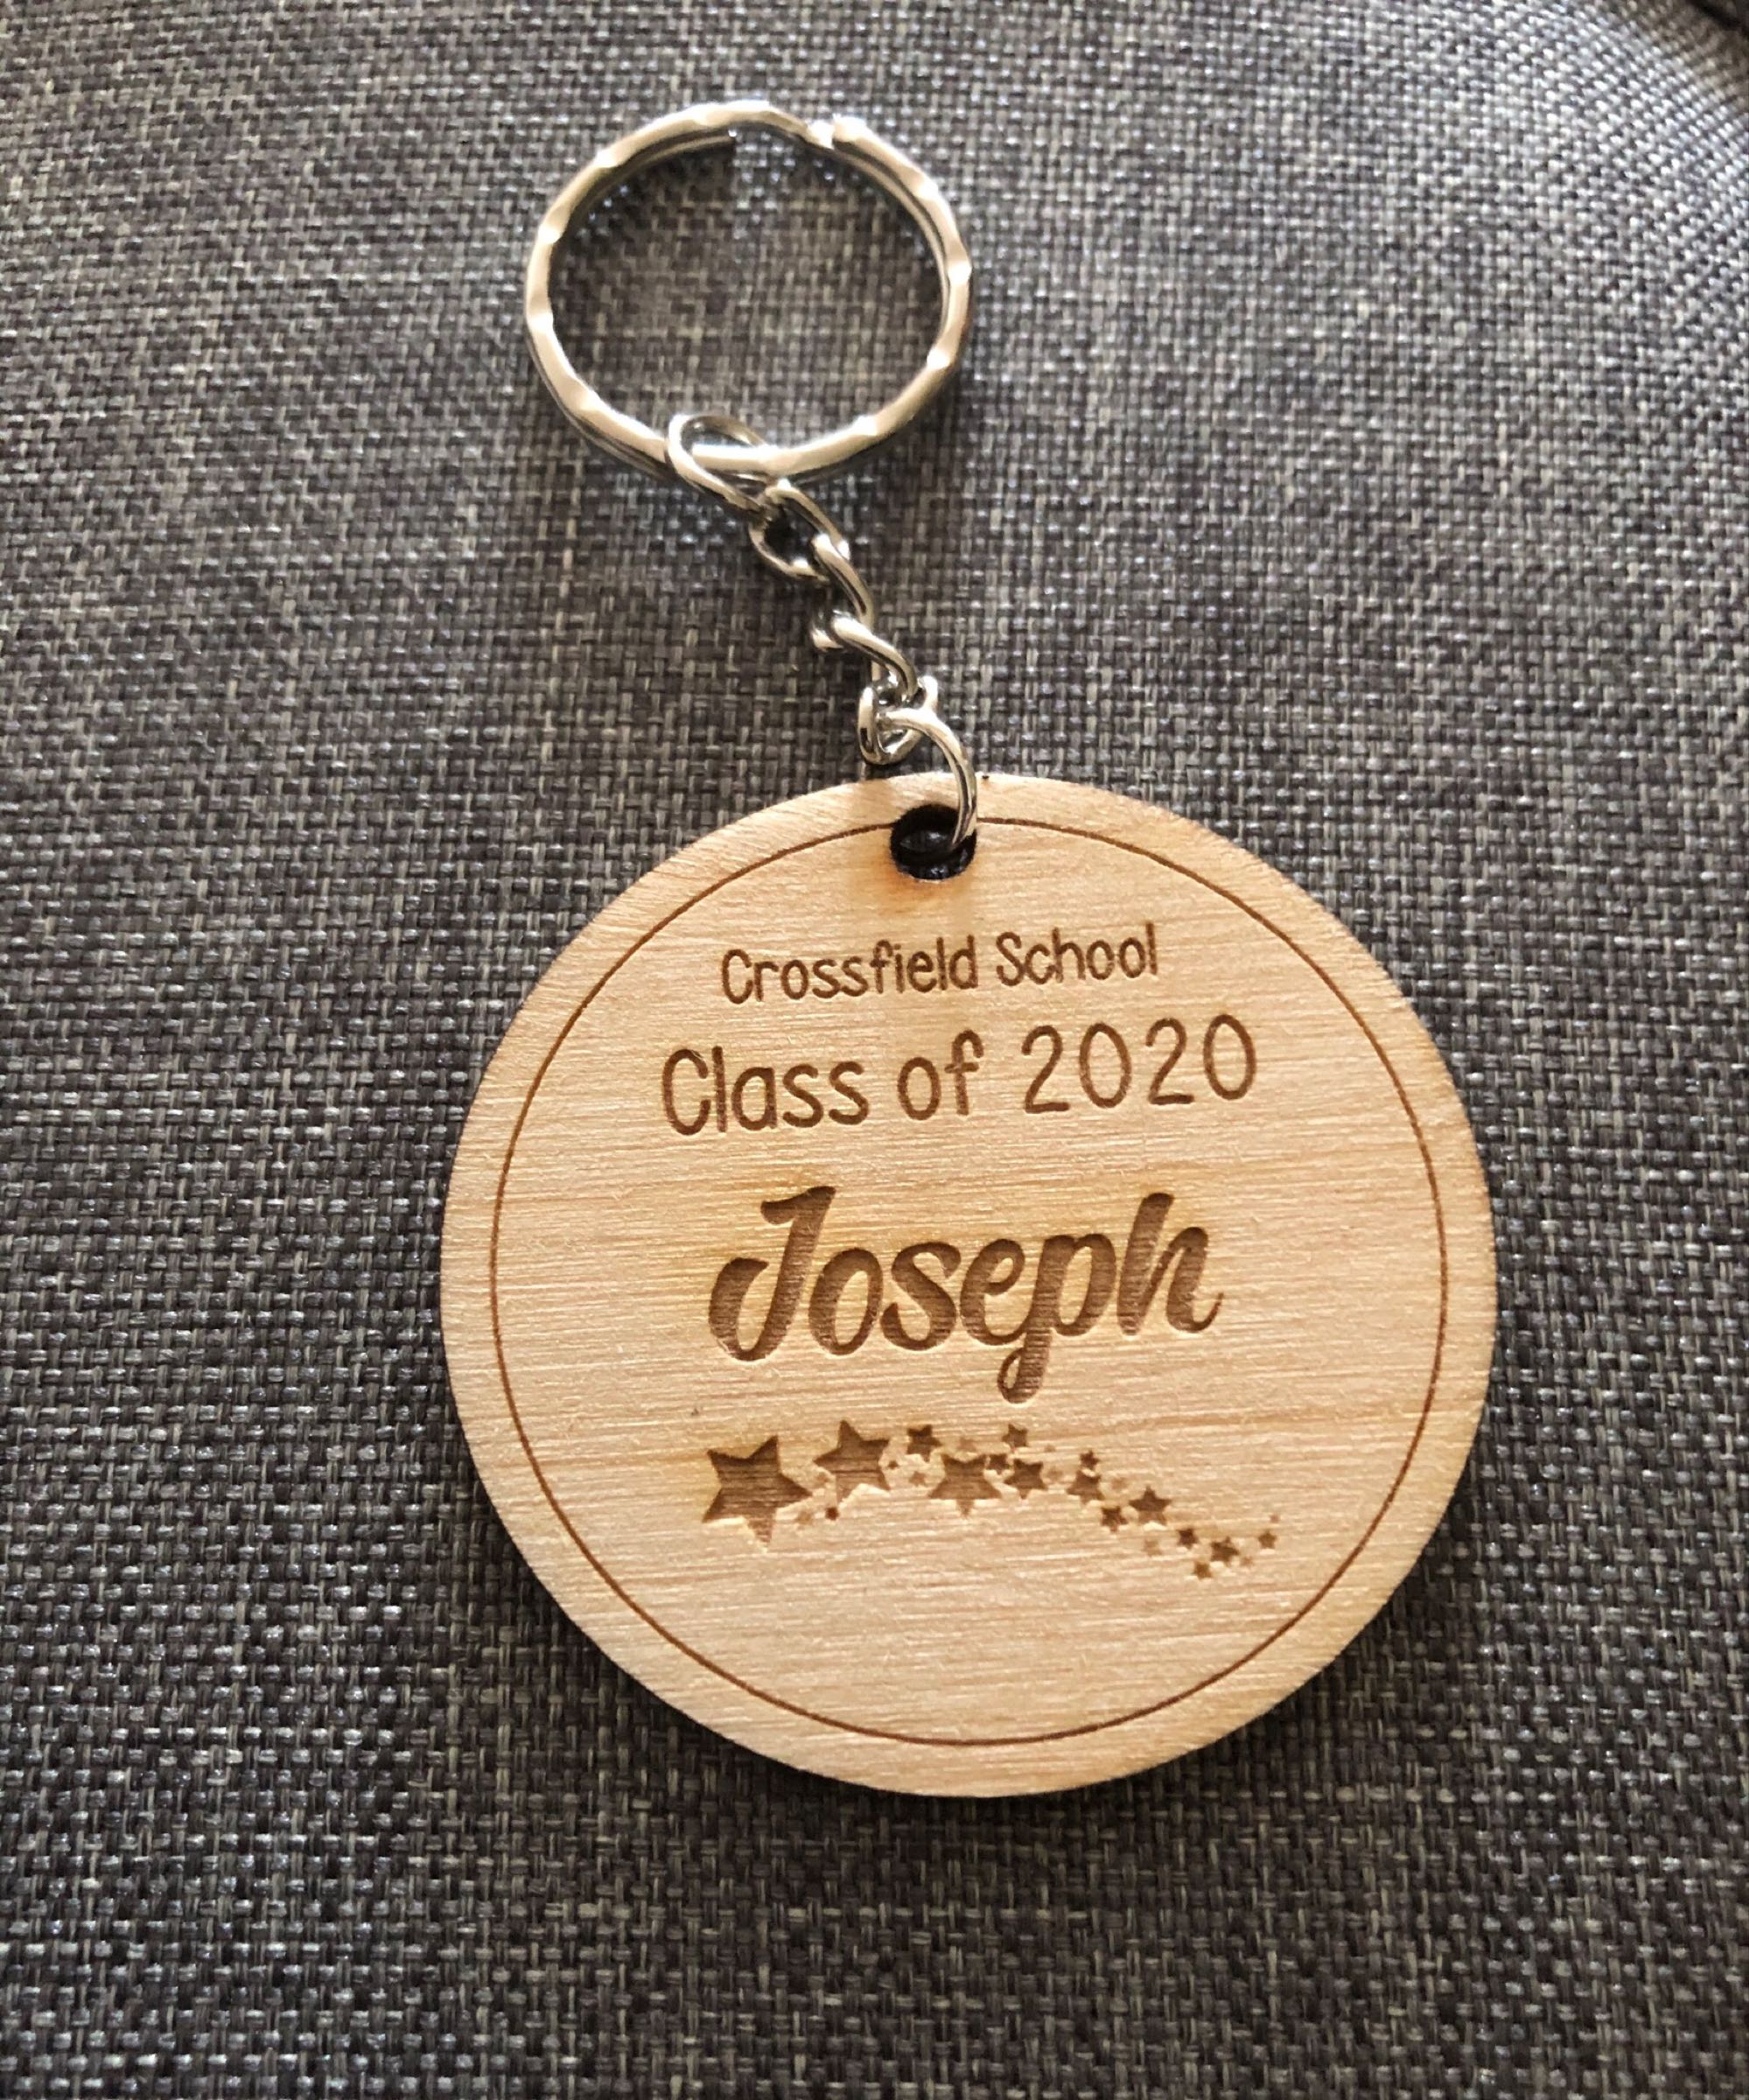 End of Term Keyring offer - £1 each when ordering 20 or more